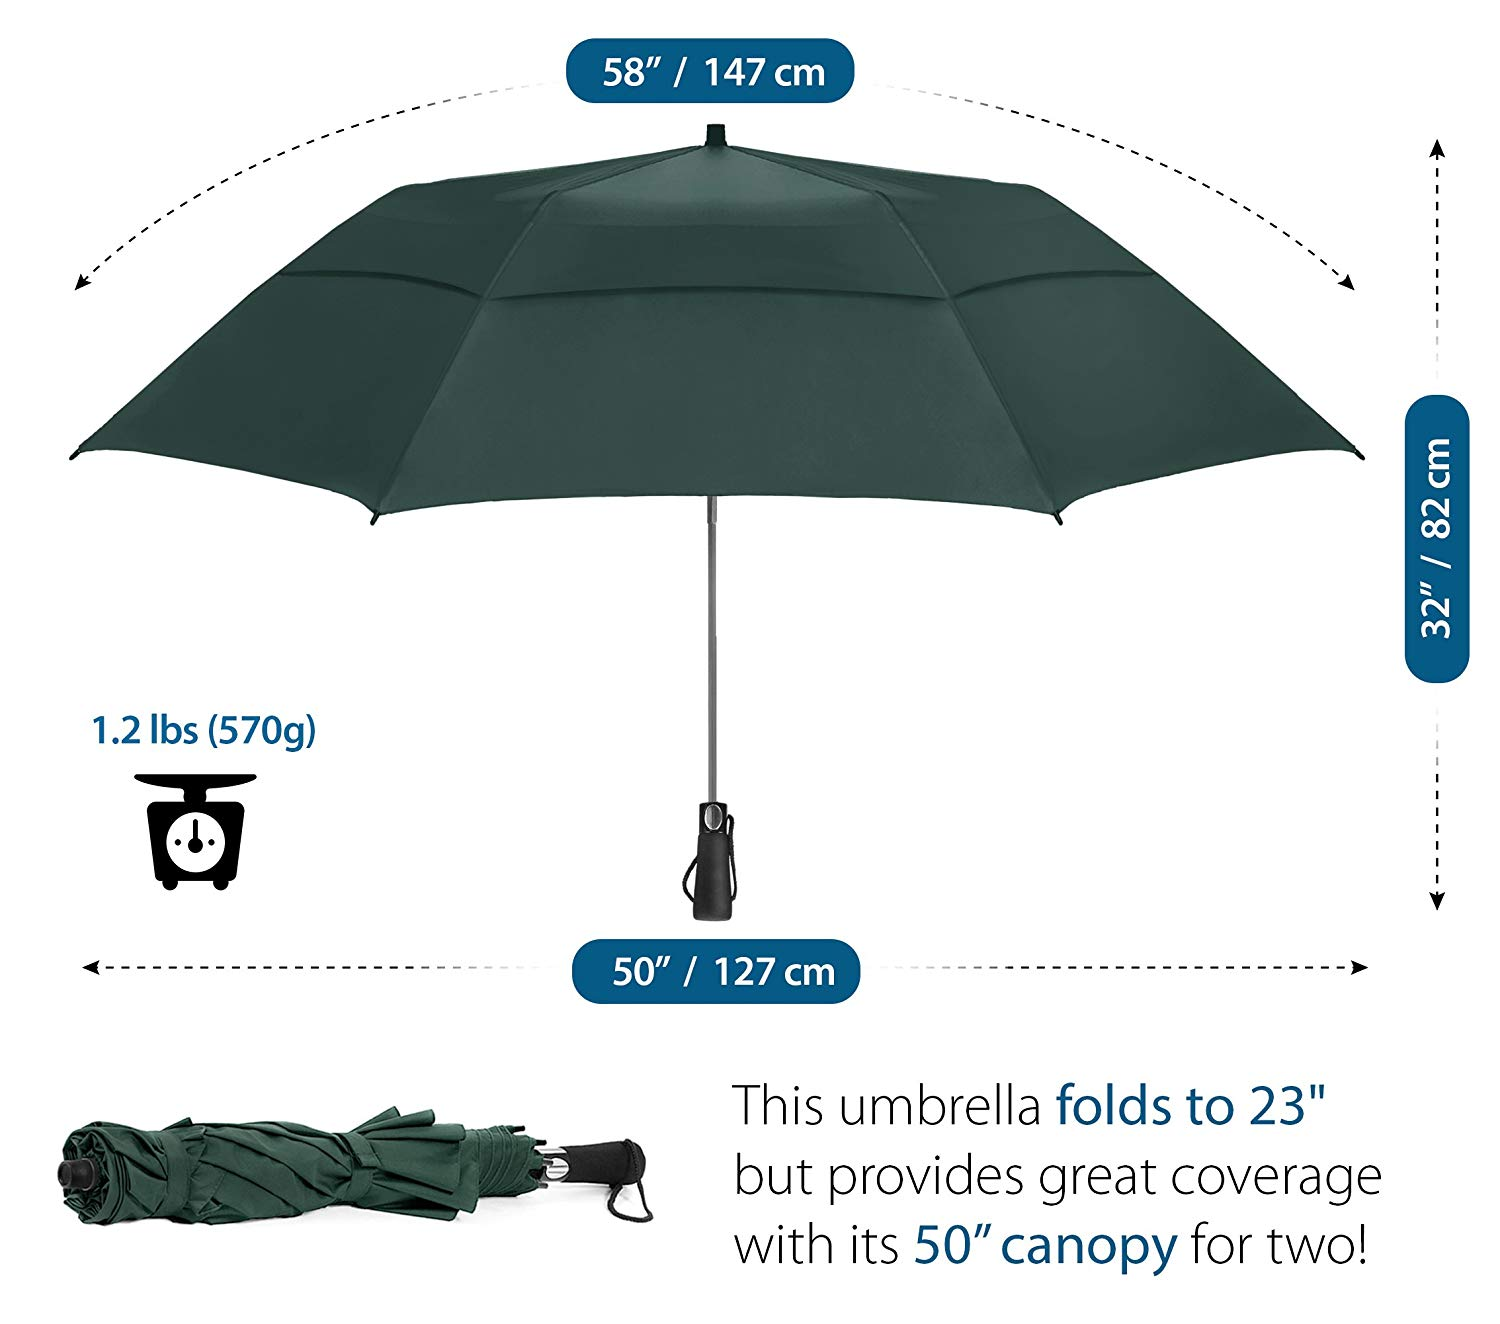 Amazon Sales 58 Inch Portable  Large Double Canopy Automatic Open Strong Oversized Rain Golf Umbrellas